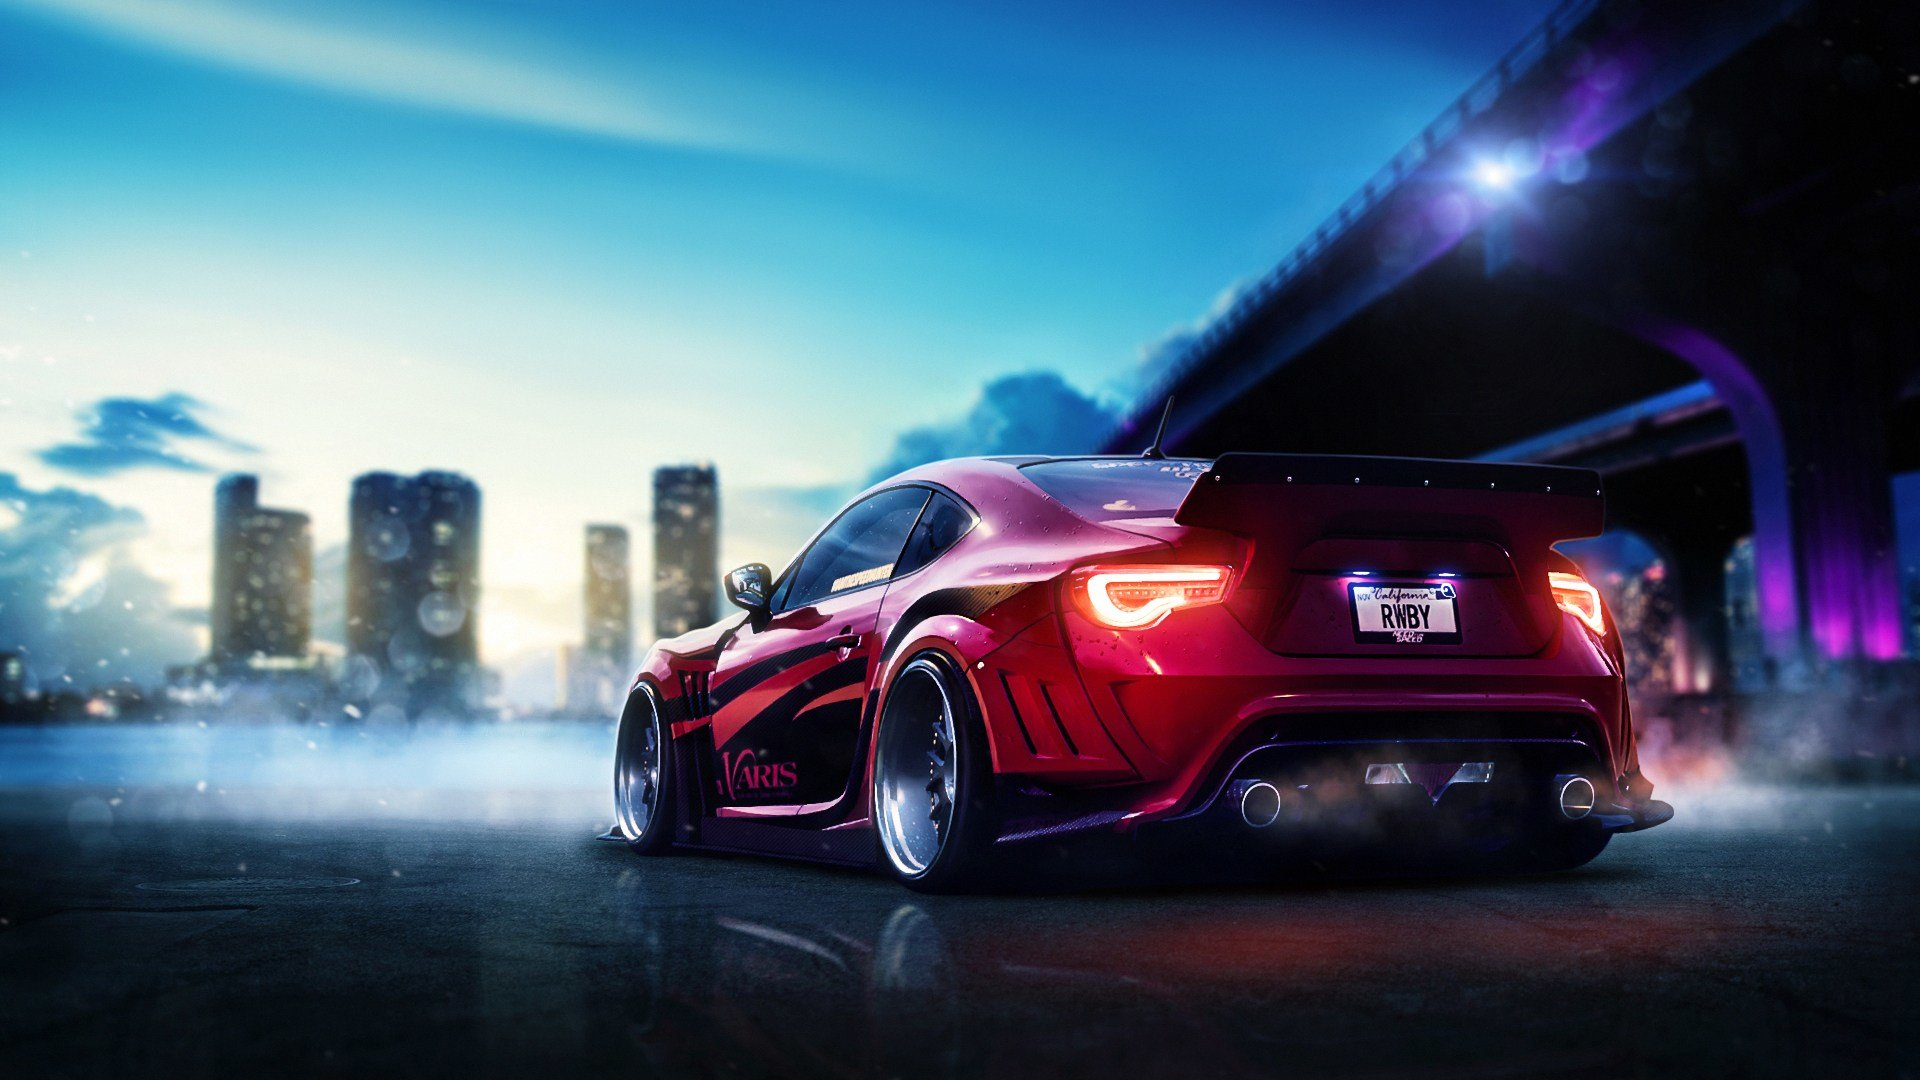 New Toyota Gt86 Wallpaper Hd Car Wallpapers Id 6807 On This Month